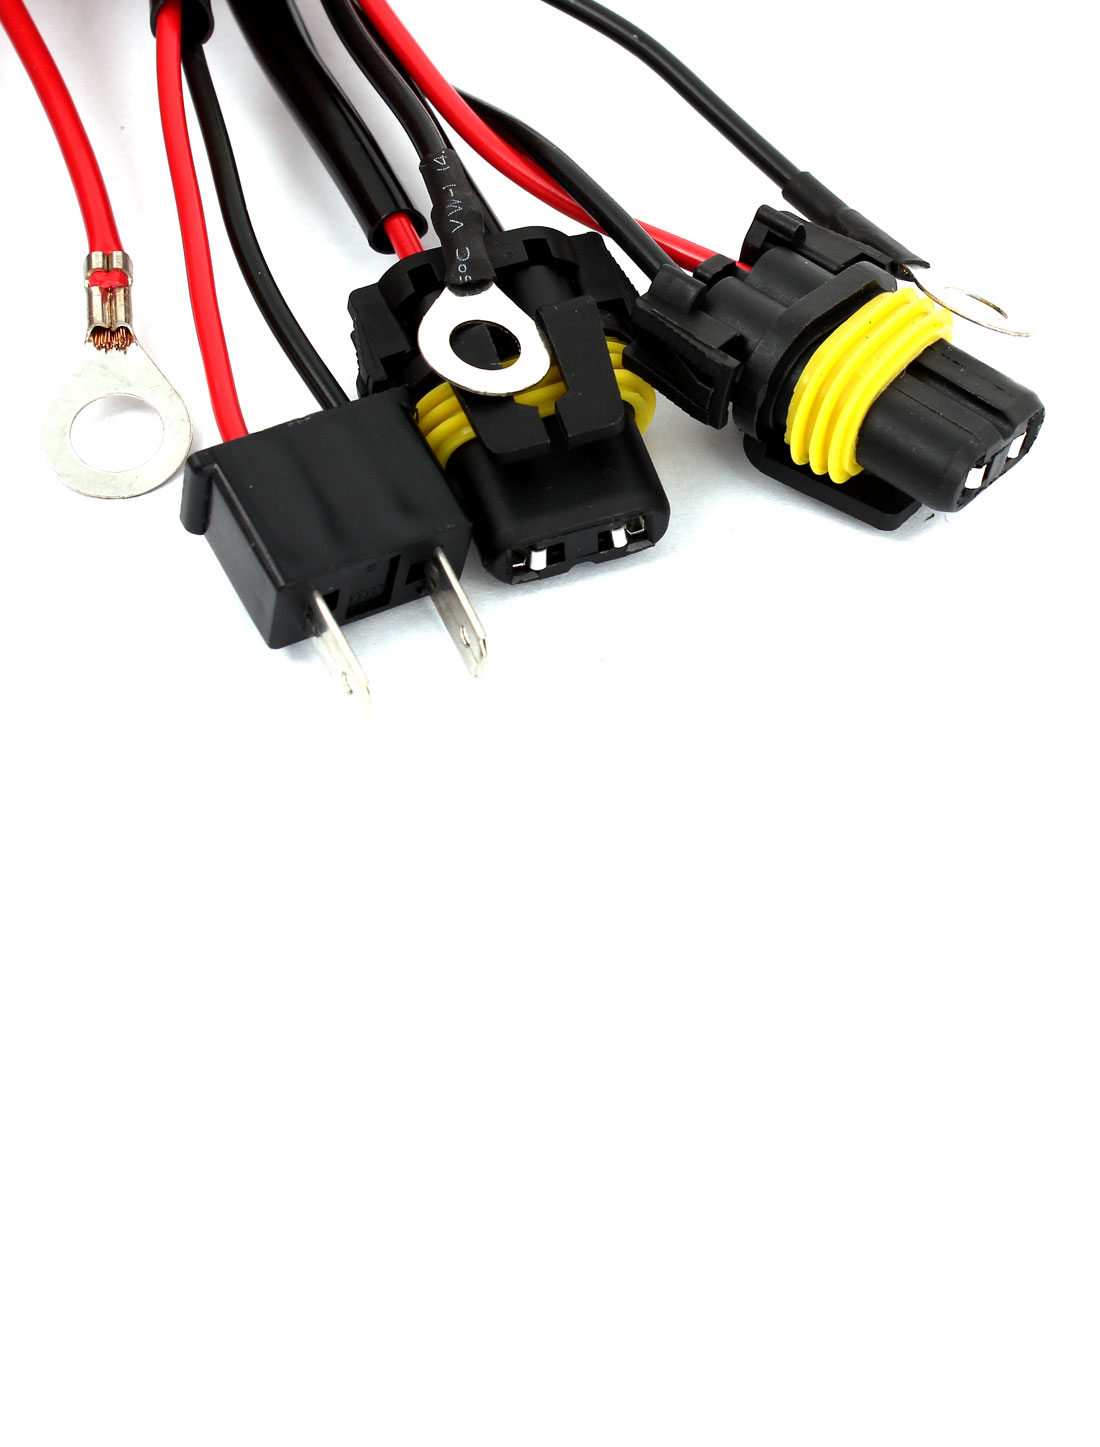 medium resolution of h7 xenon hid conversion kit relay wiring harness wire upgrade pack for car walmart canada